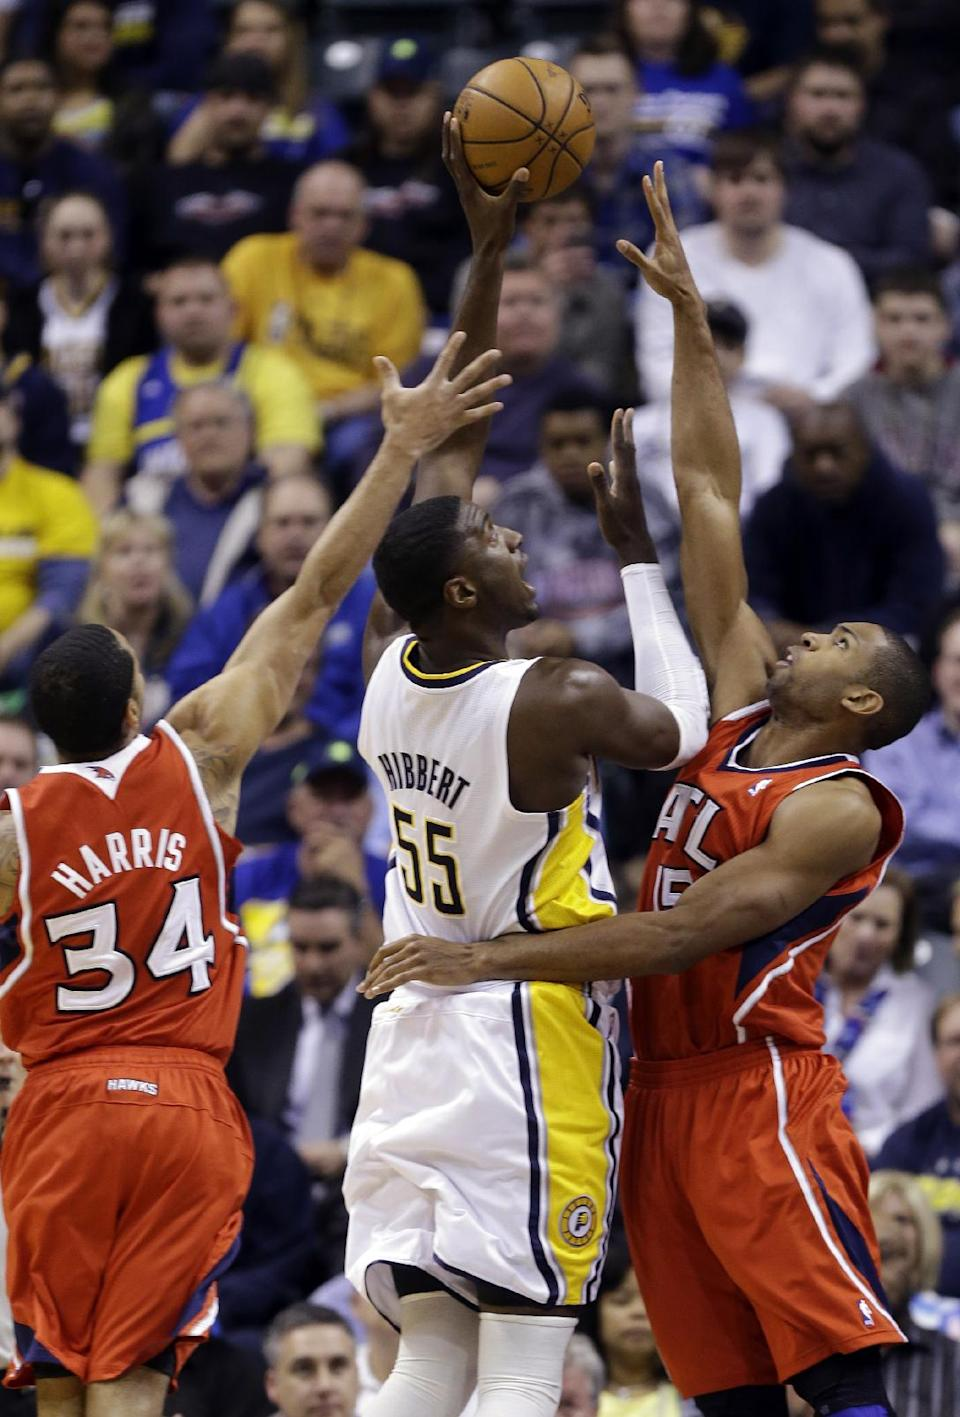 Indiana Pacers center Roy Hibbert (55) shoots between Atlanta Hawks guard Devin Harris, left, and center Al Horford in the first half of Game 2 of a first-round NBA basketball playoff series in Indianapolis, Wednesday, April 24, 2013. (AP Photo/Michael Conroy)